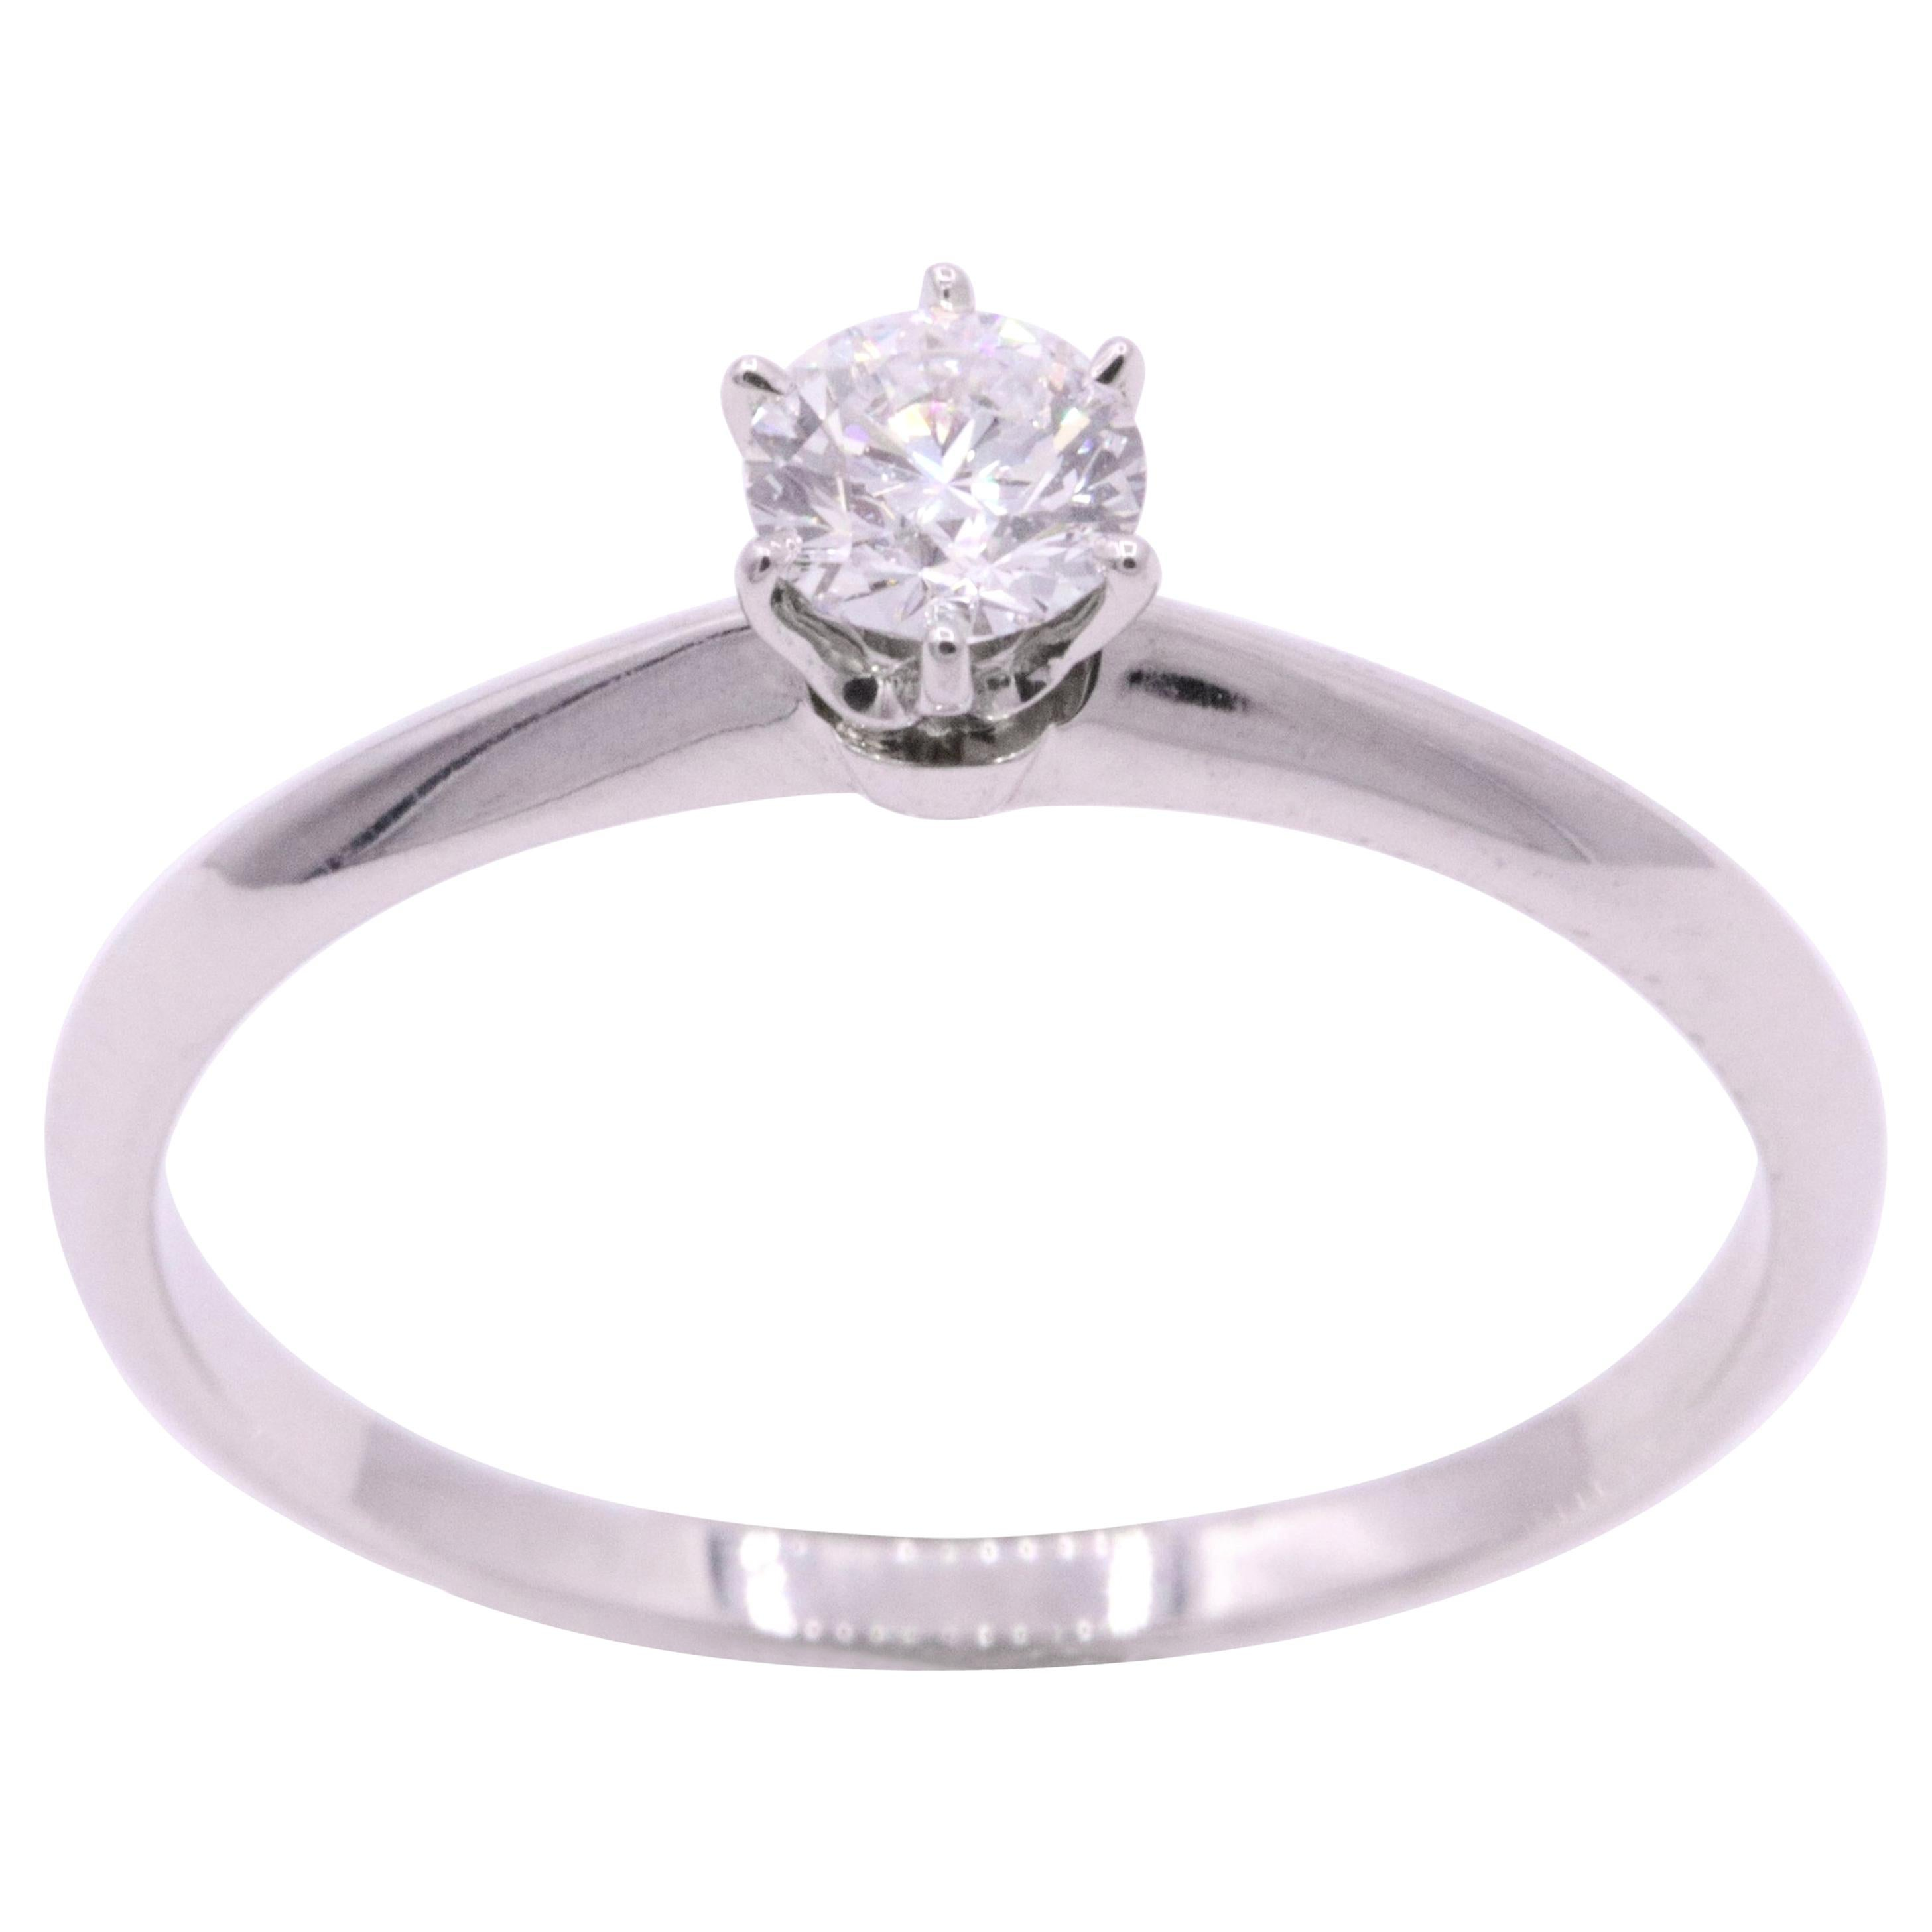 Tiffany & Co. Diamond Solitaire Engagement Ring 0.30 Carat F VS1 Platinum